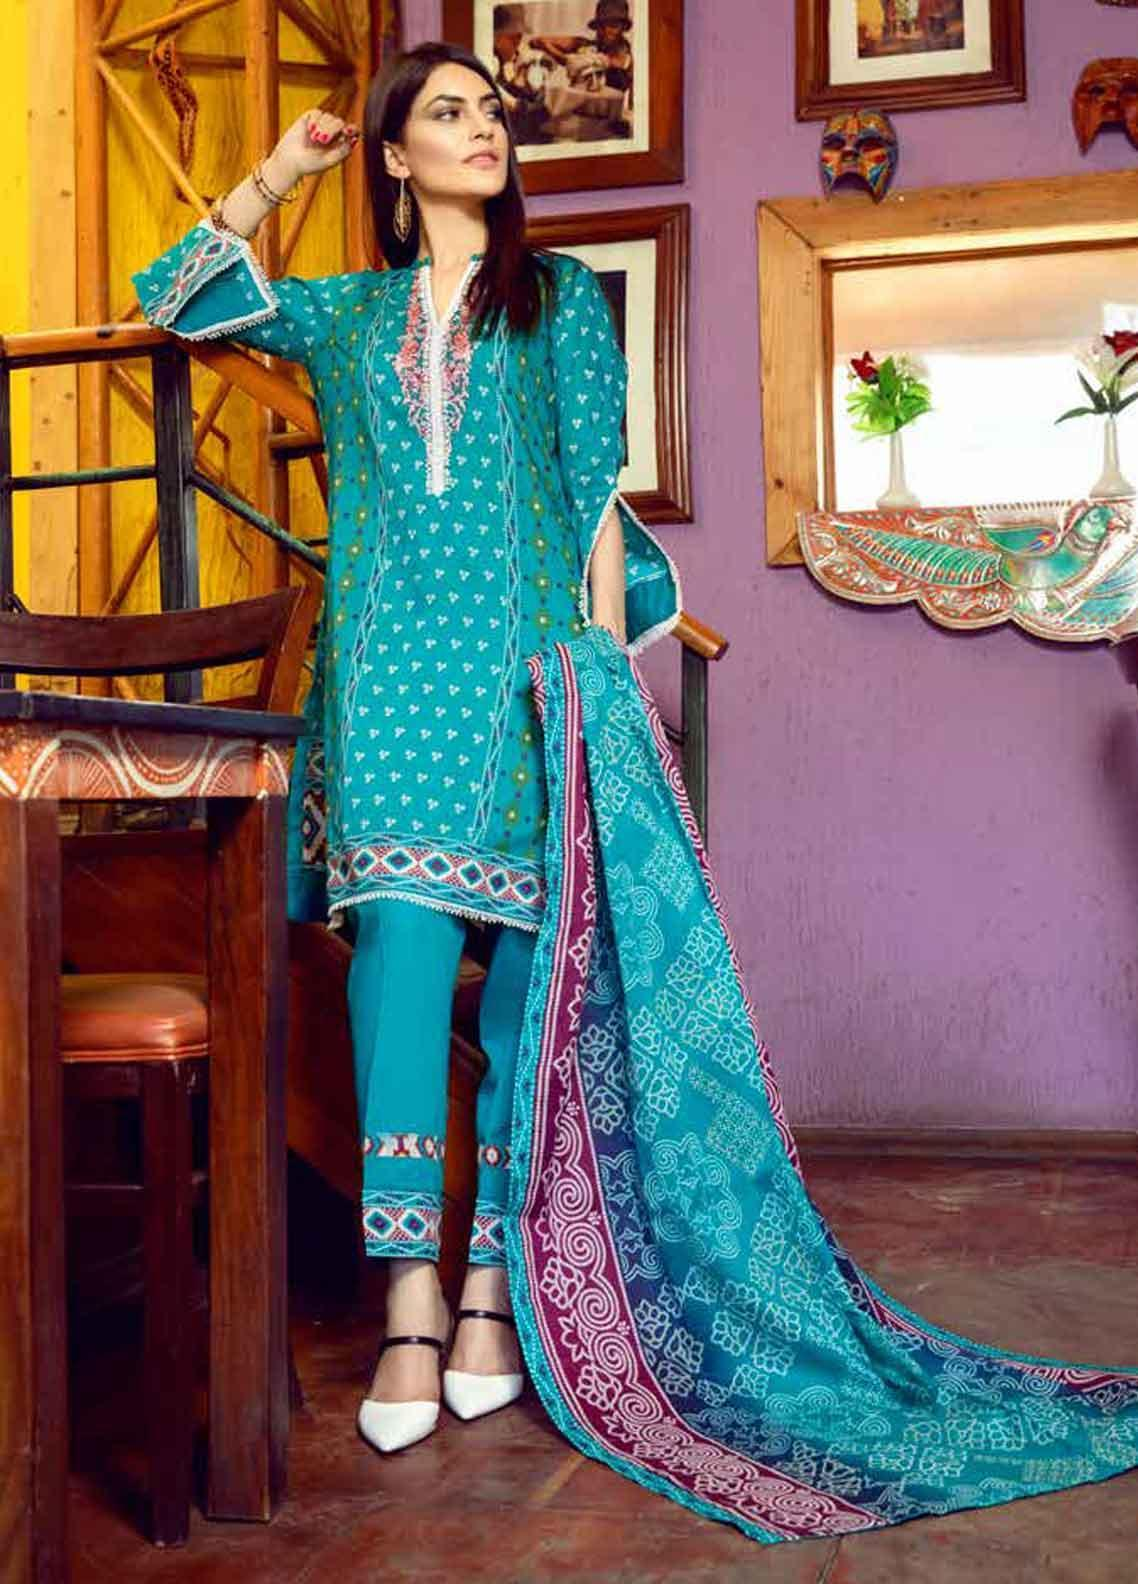 Monsoon by Al Zohaib Printed Lawn Unstitched 3 Piece Suit MN19-L3 10C - Mid Summer Collection